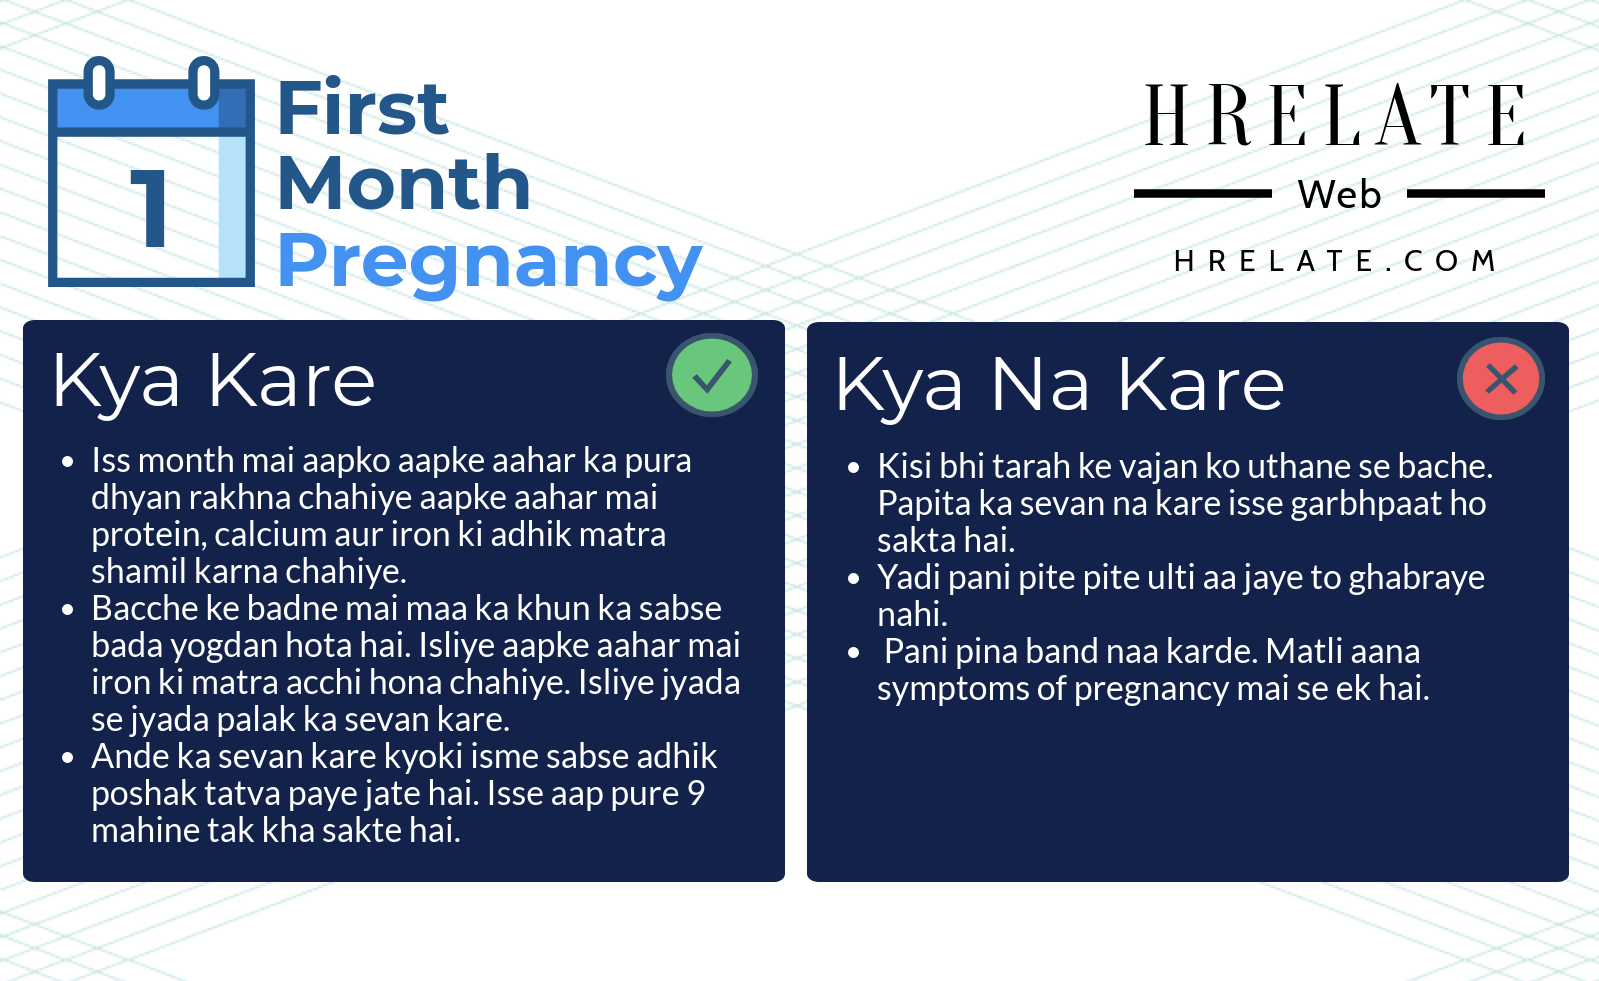 first month pregnancy in Hindi